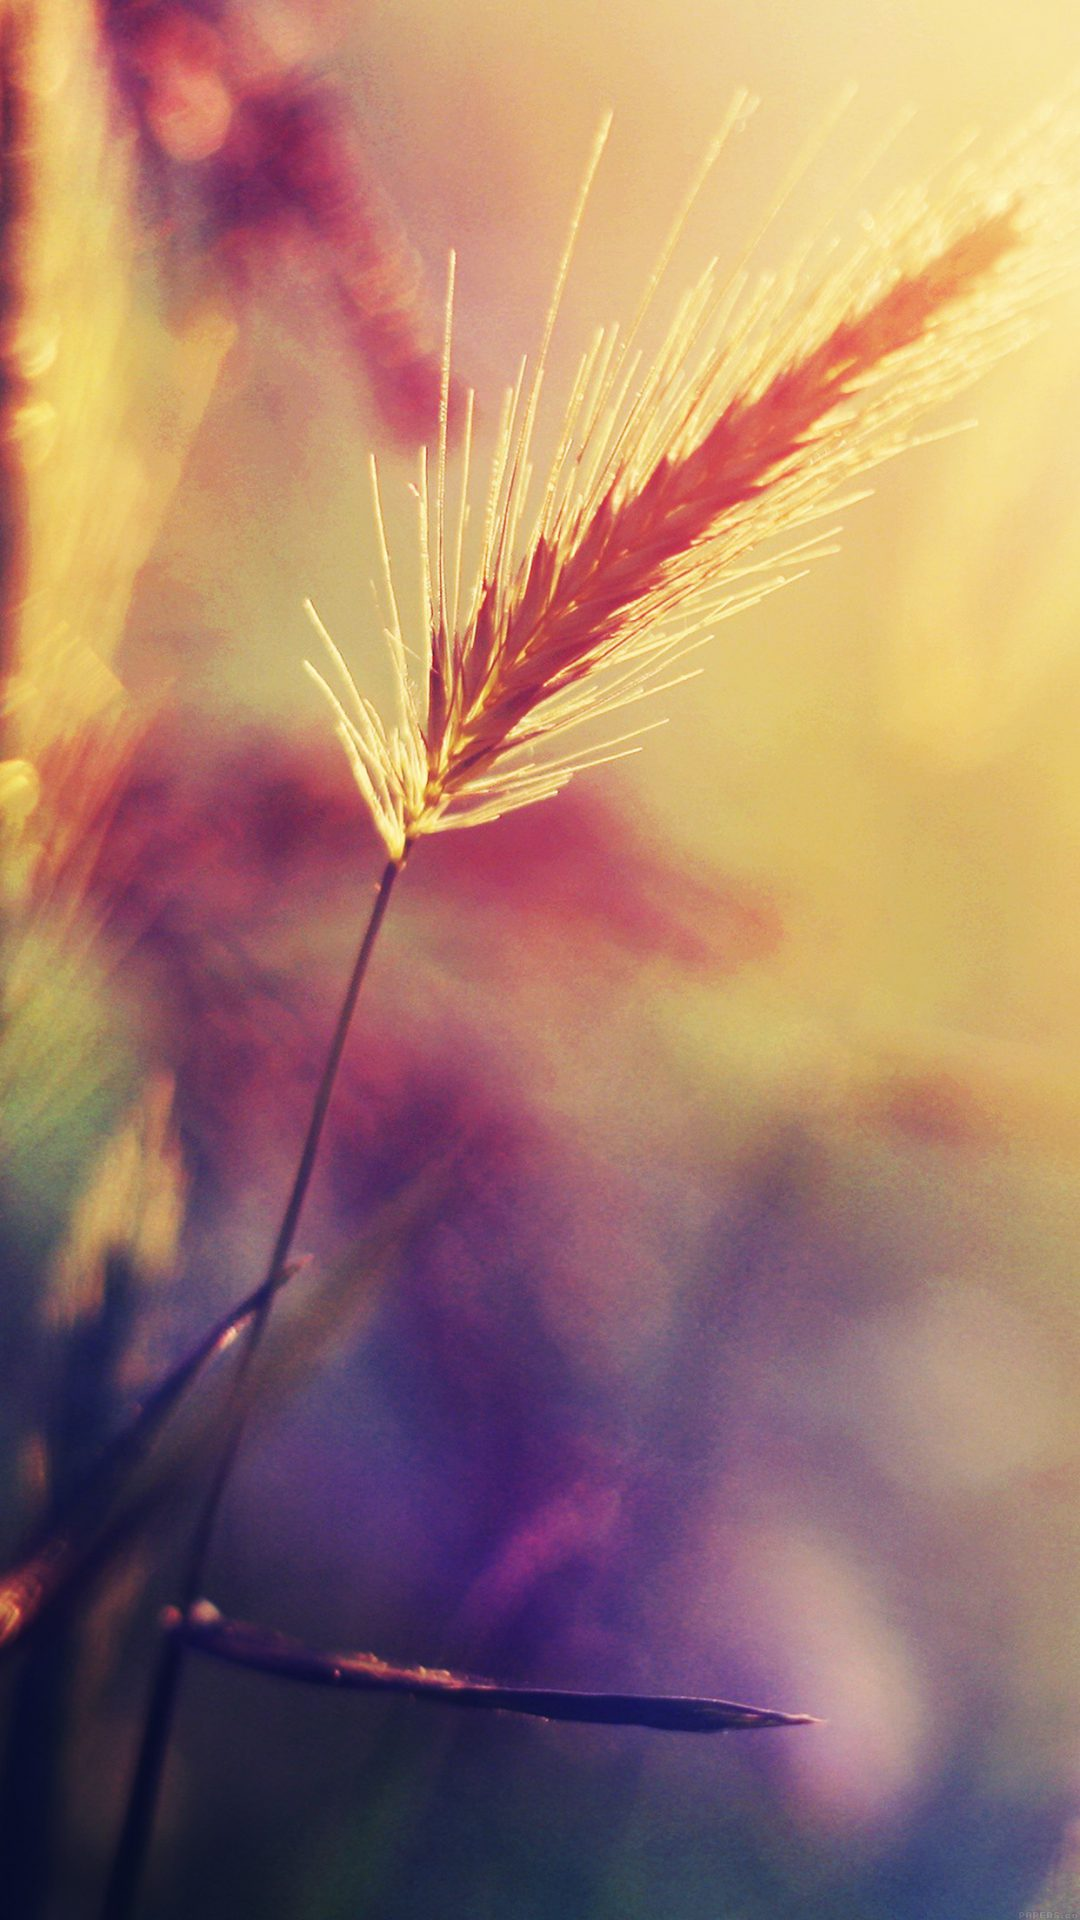 Sunset Reed Flower Flare Nature